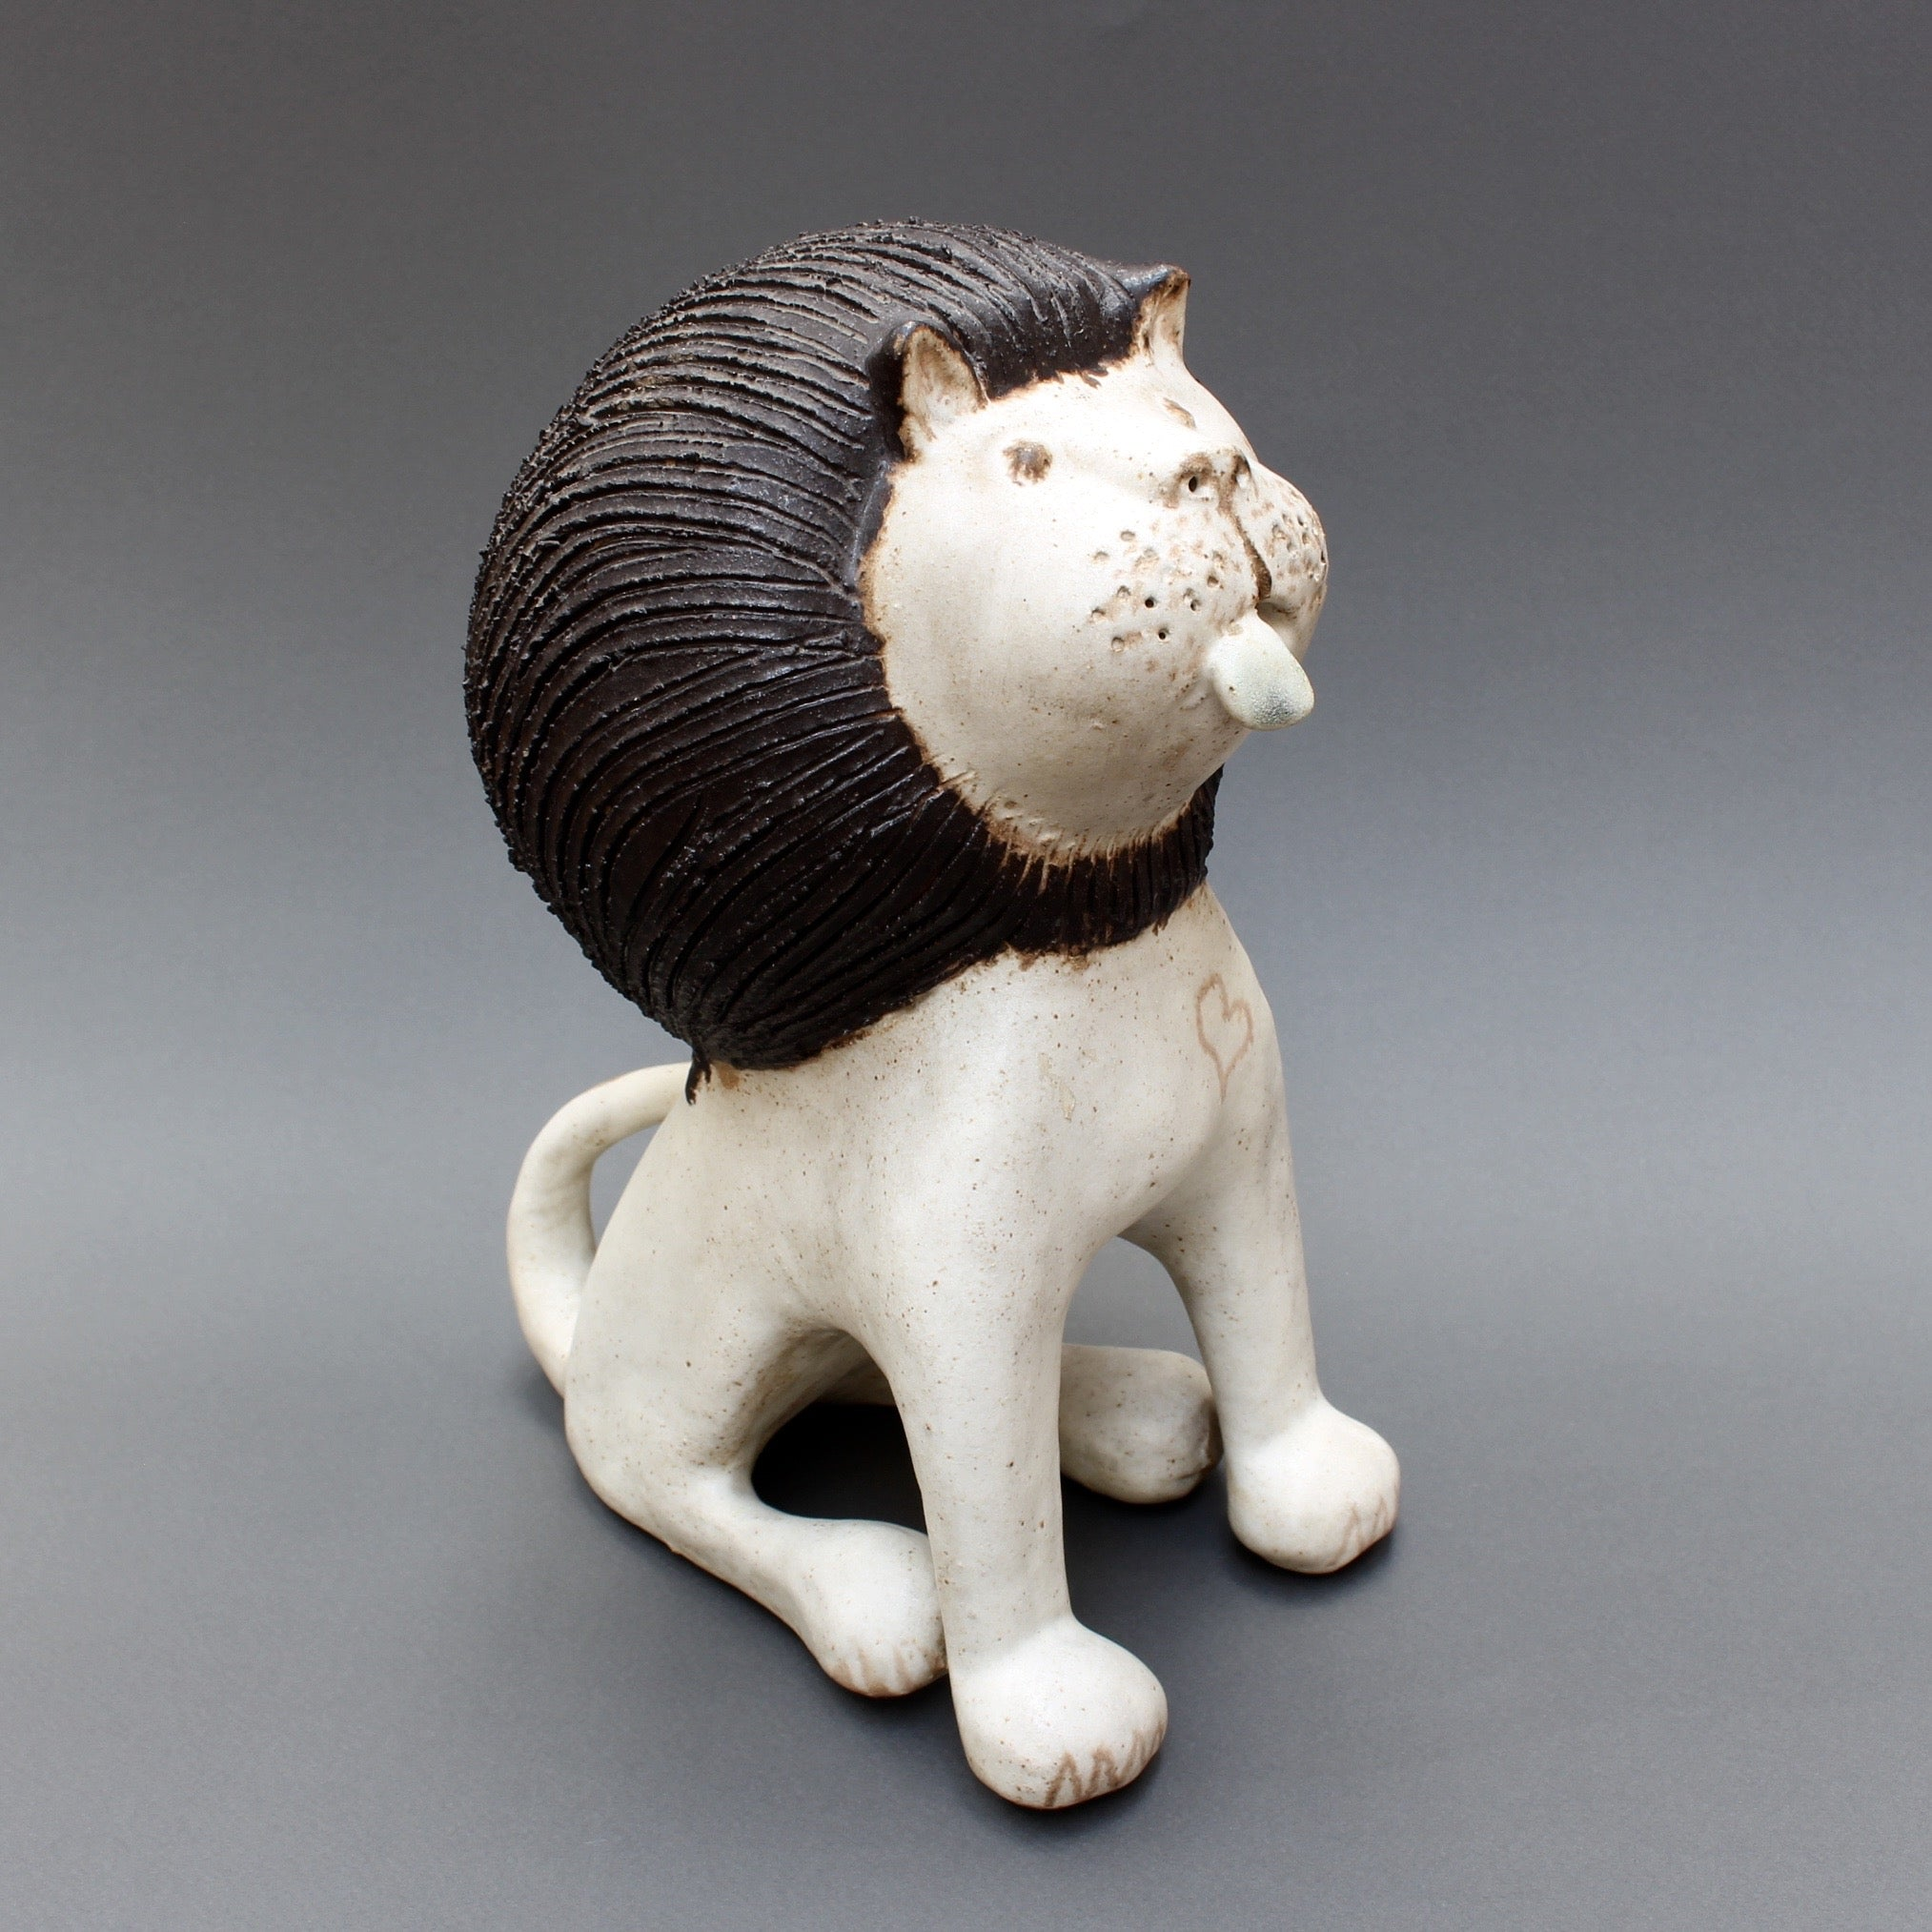 Ceramic Lion by Bruno Gambone (c. 1970s)